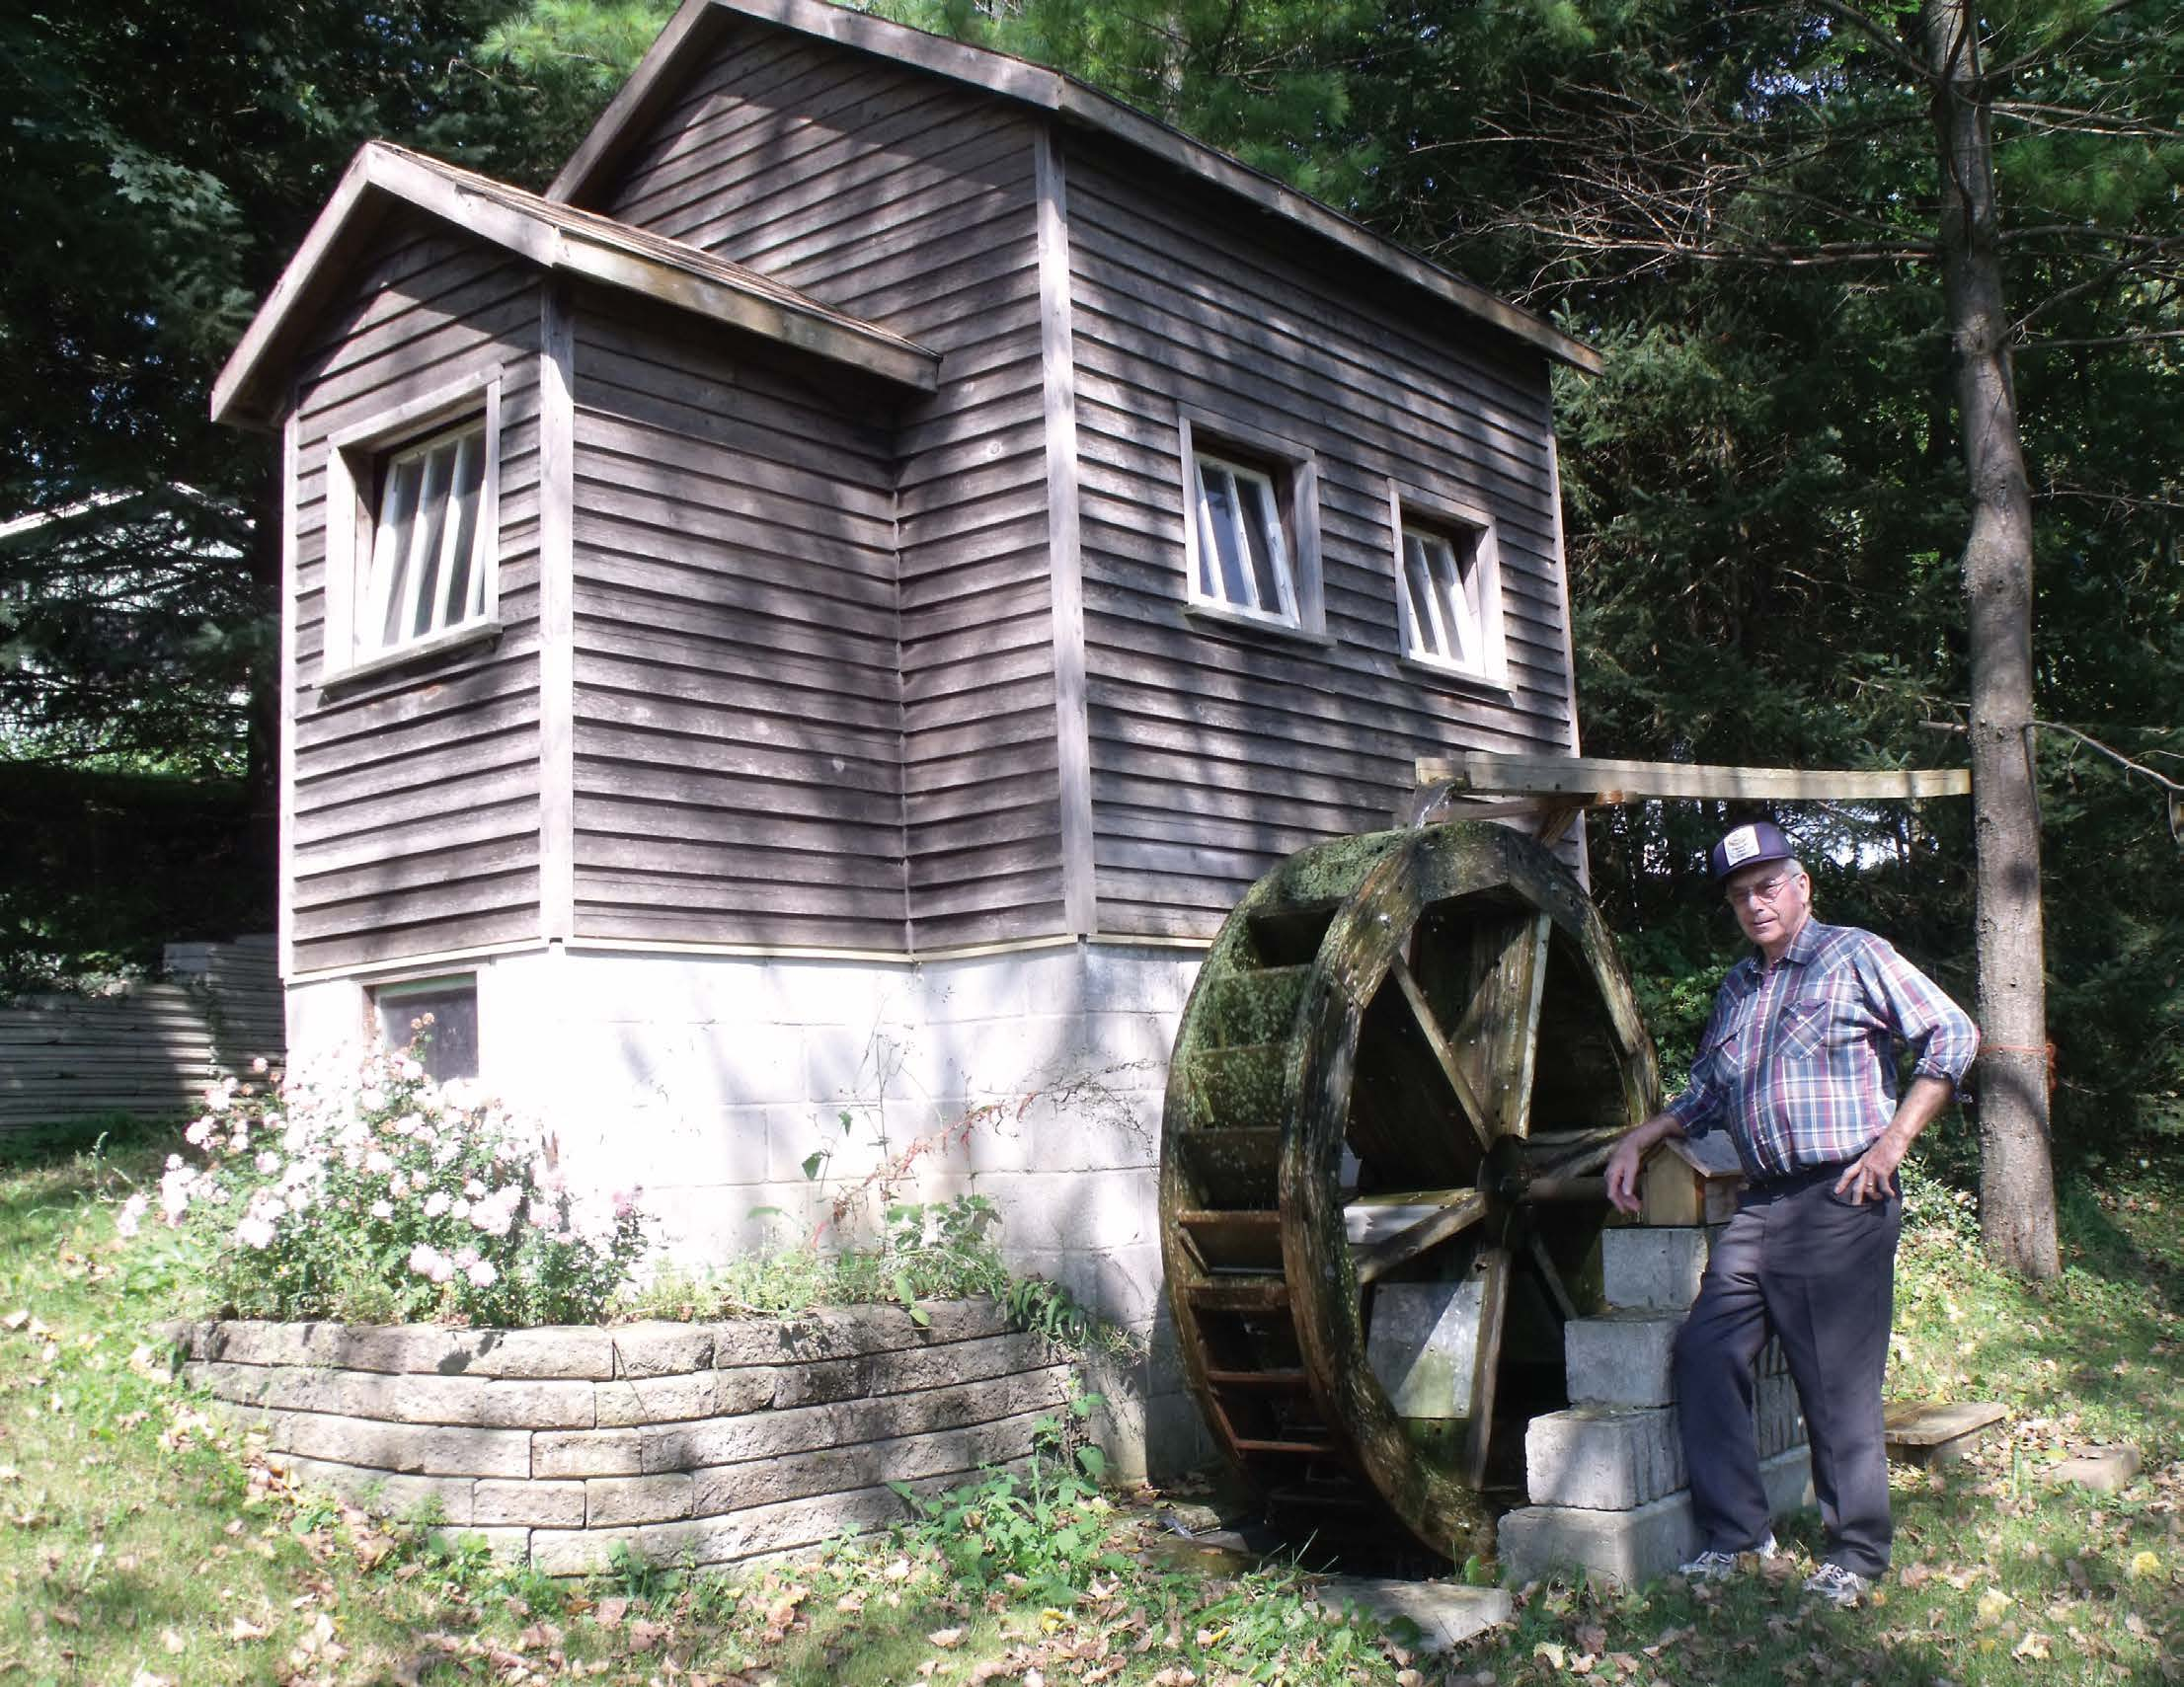 Floyd Schieck stands beside the working grist mill he built in the backyard of his Drayton home. Patrick Raftis photo